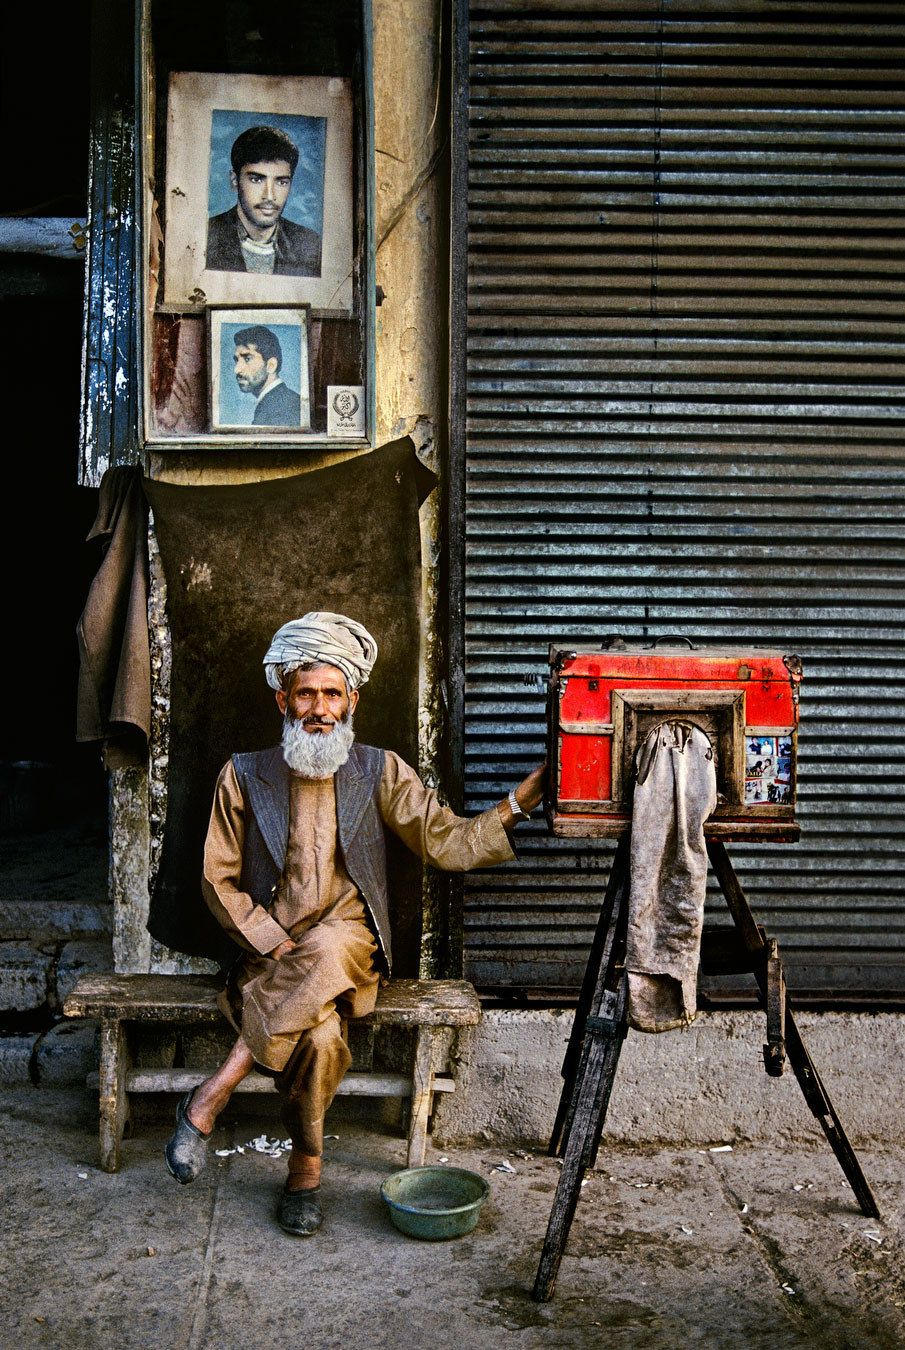 'Portrait photographer', 1992.   24 Striking Pictures Of Afghanistan By Photojournalist Steve McCurry